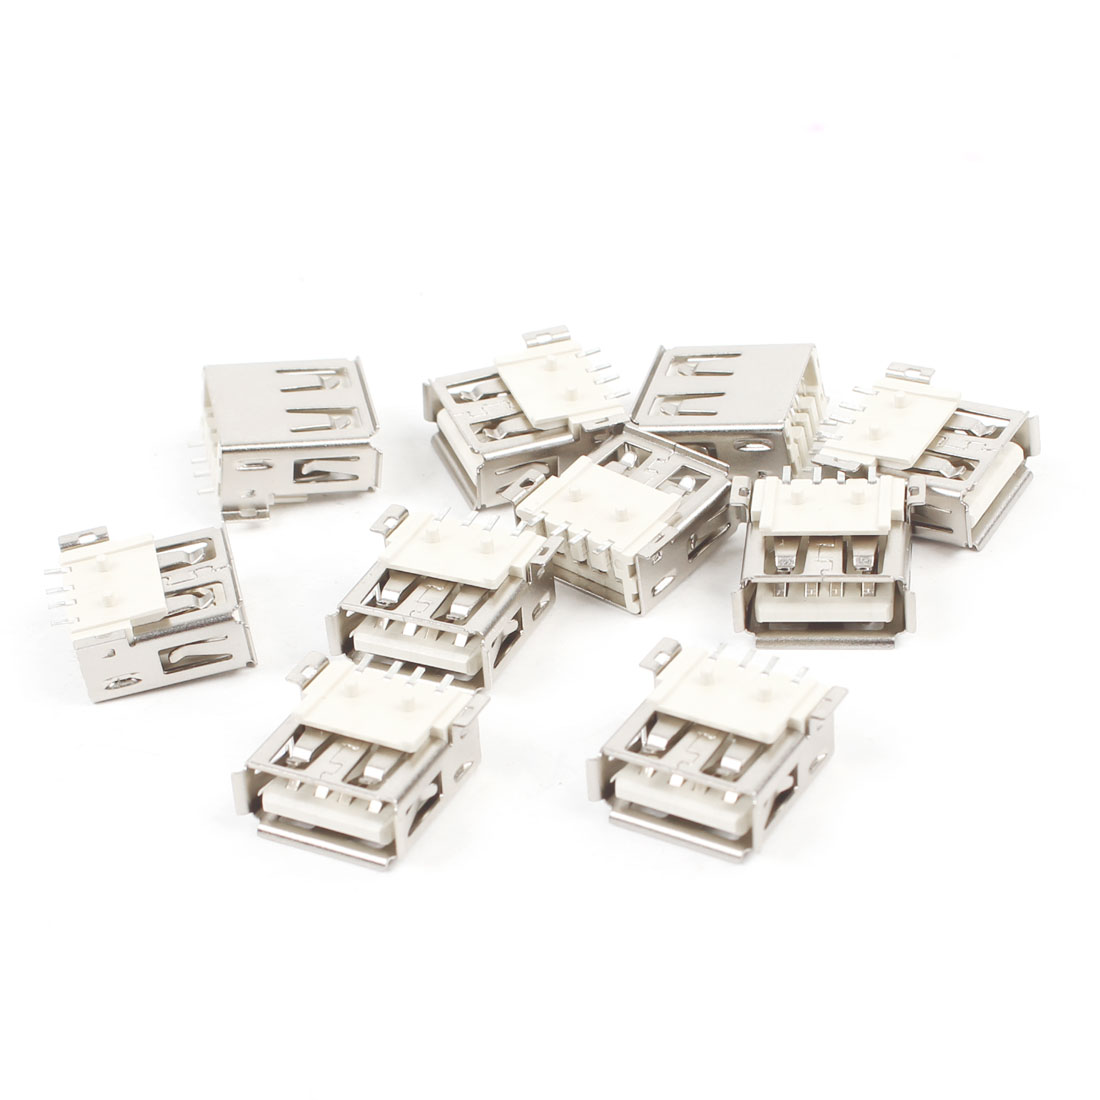 10 Pcs USB 2.0 Type A Female Socket DIY SMT Connector Silver Tone Off White